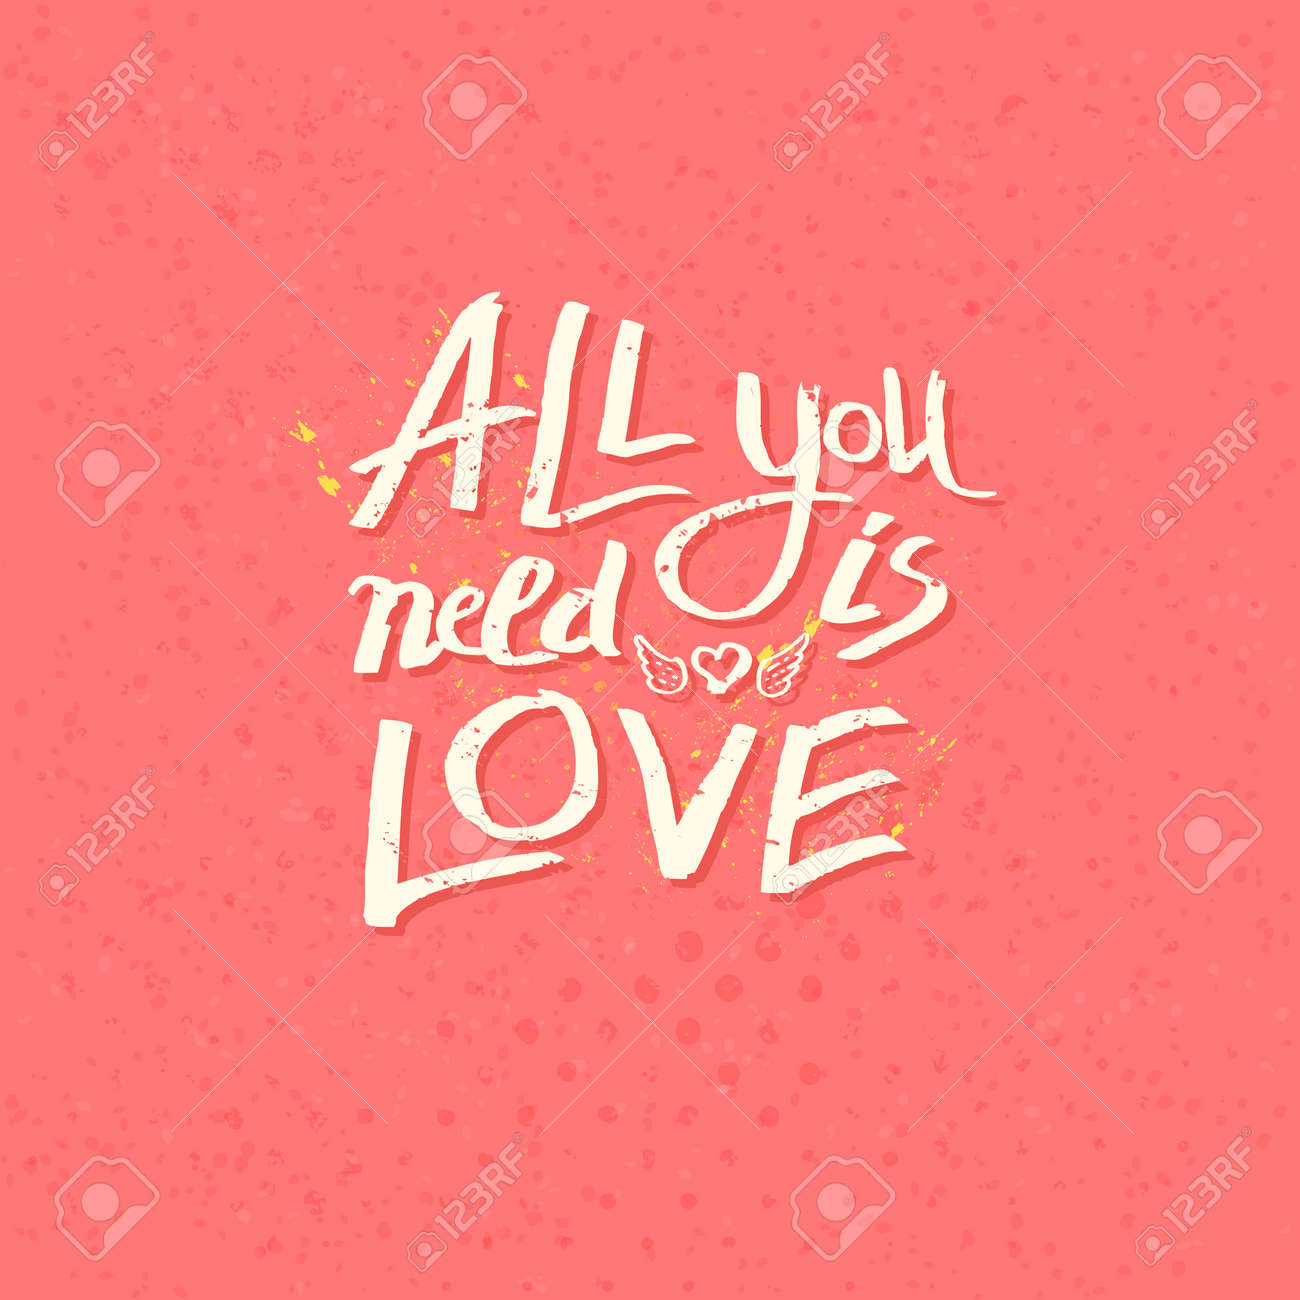 all you need is love text